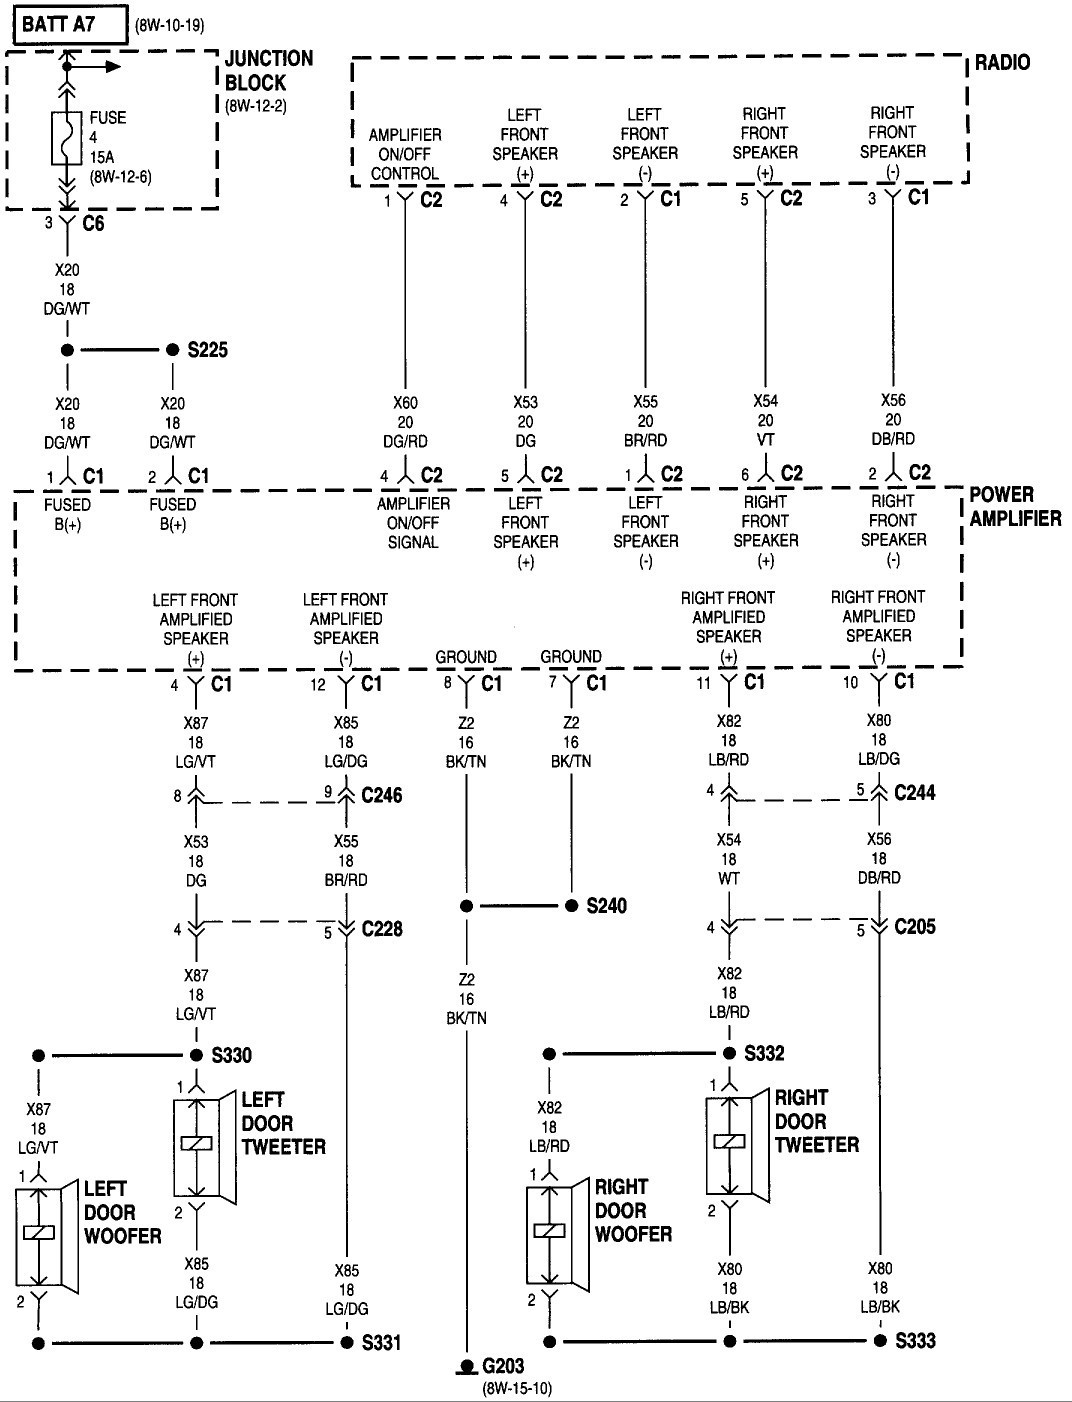 2003 Dodge Grand Caravan Fuse Box Diagram Wiring Library